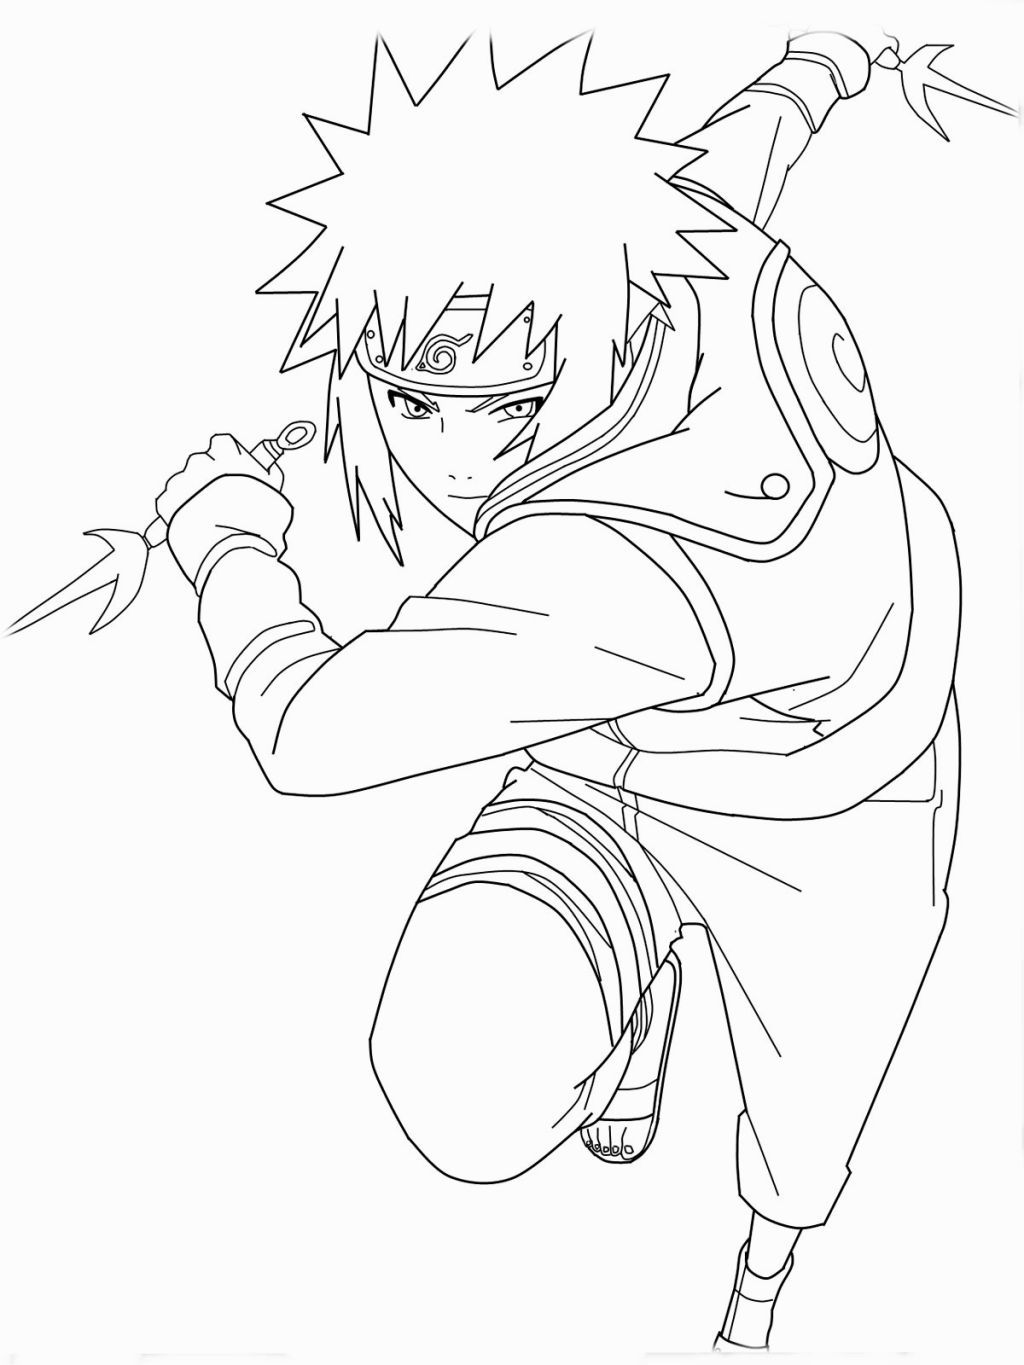 Naruto Coloring Pages | Coloring Pages | Pinterest